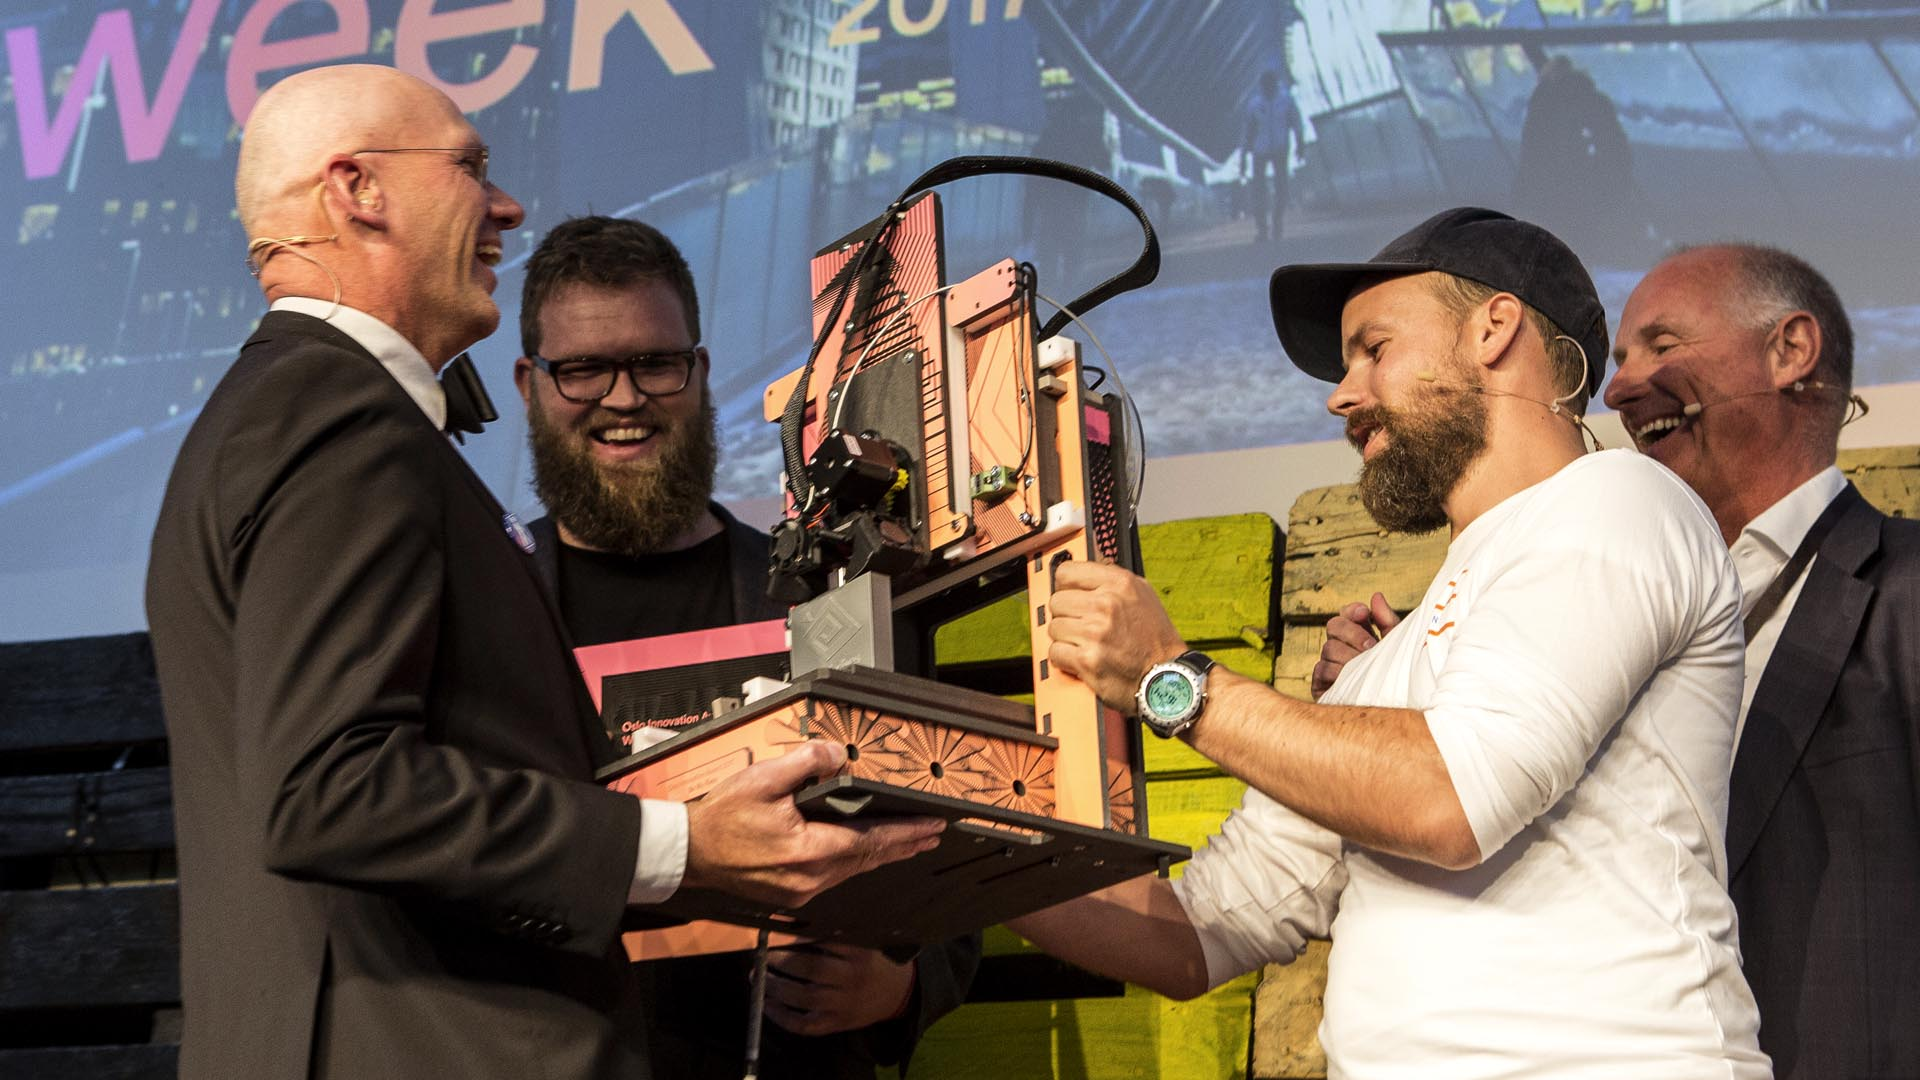 Winners of Oslo Innovation Award 2017 reciveing their Hattori A.P.E